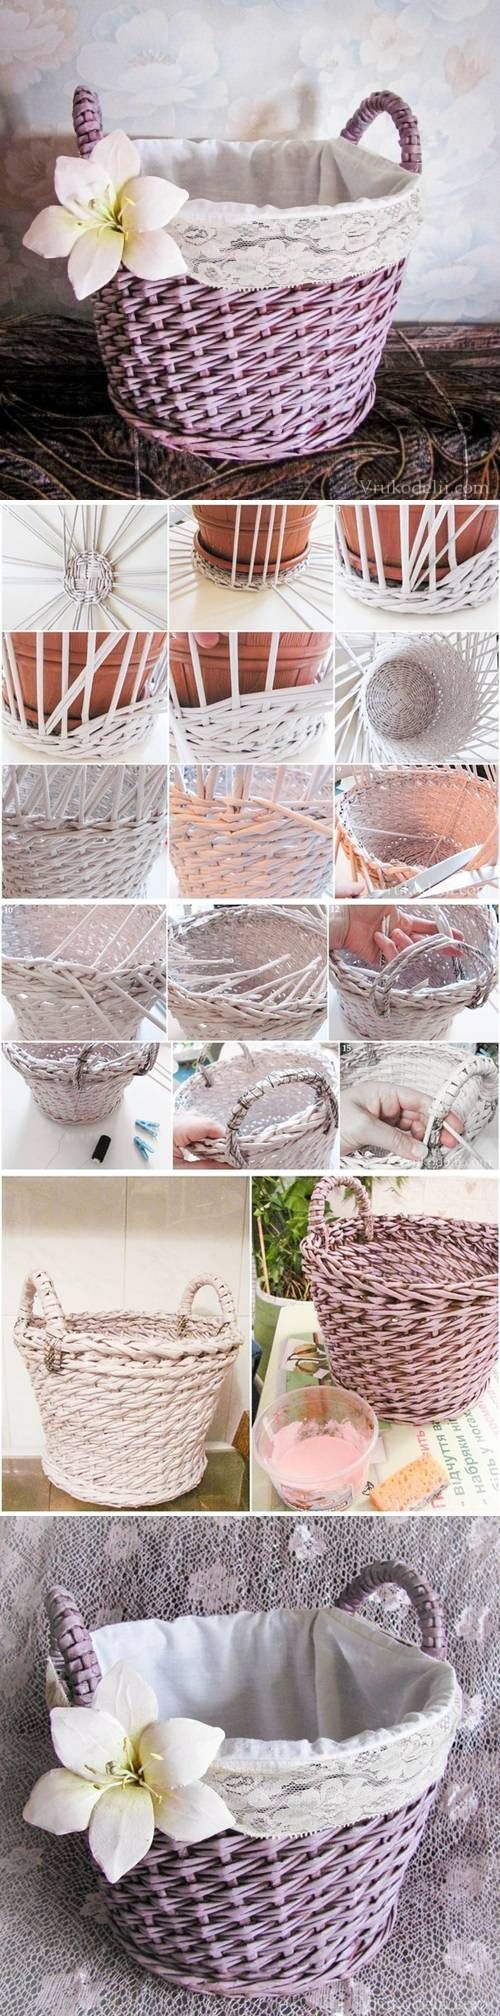 DIY: How to Recycle Paper into a Basket | DIY Newspaper Basket Layer Weave: